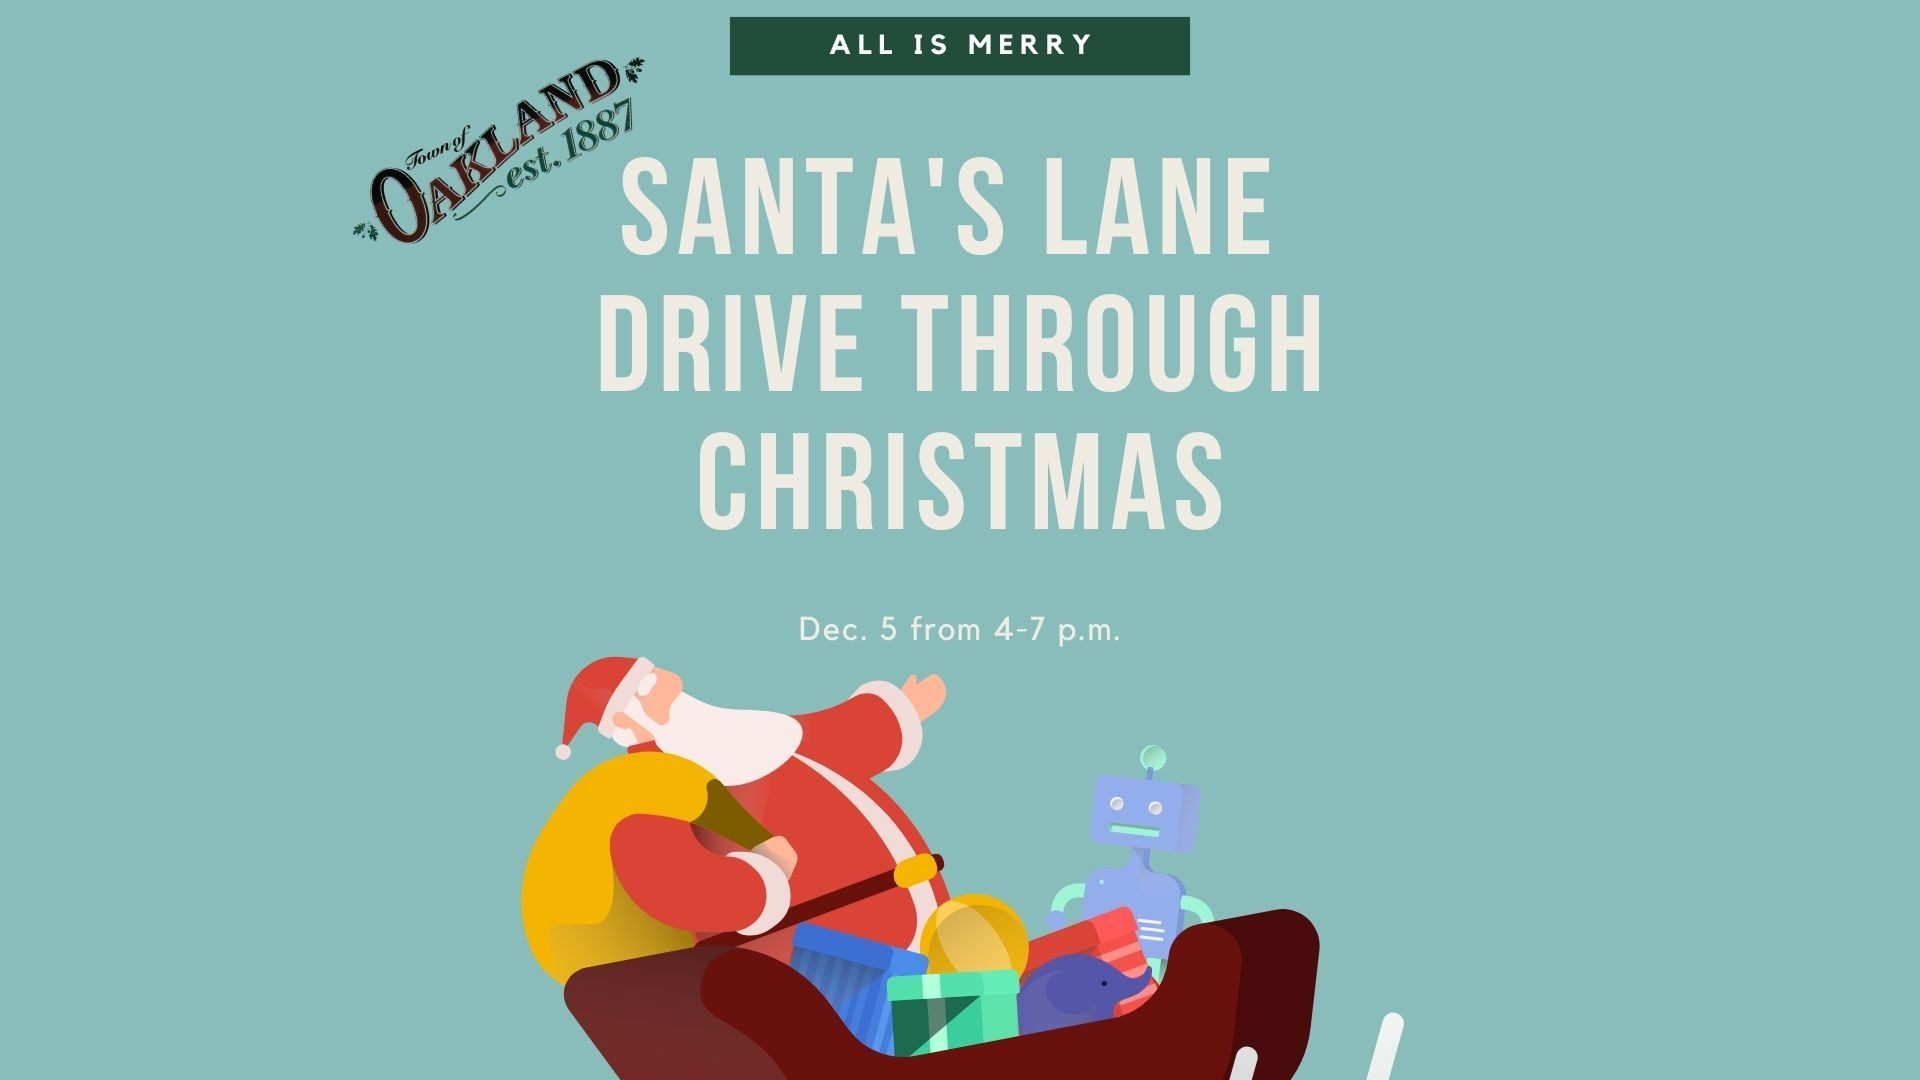 Sant's Lane Drive through Christmas flyer